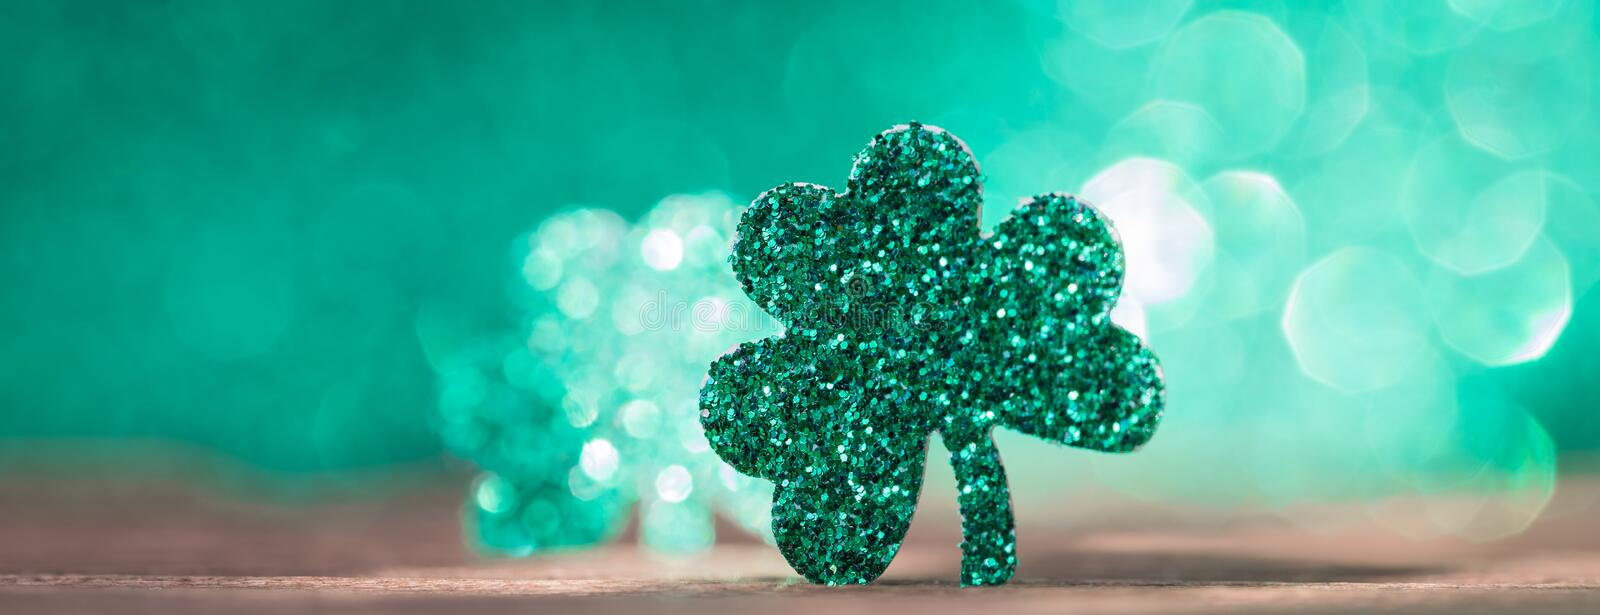 St Patrick`s day background with shamrock clover leaf, Irish festival symbol, selective focus, banner. St Patrick day background with shamrock clover leaf on royalty free stock image